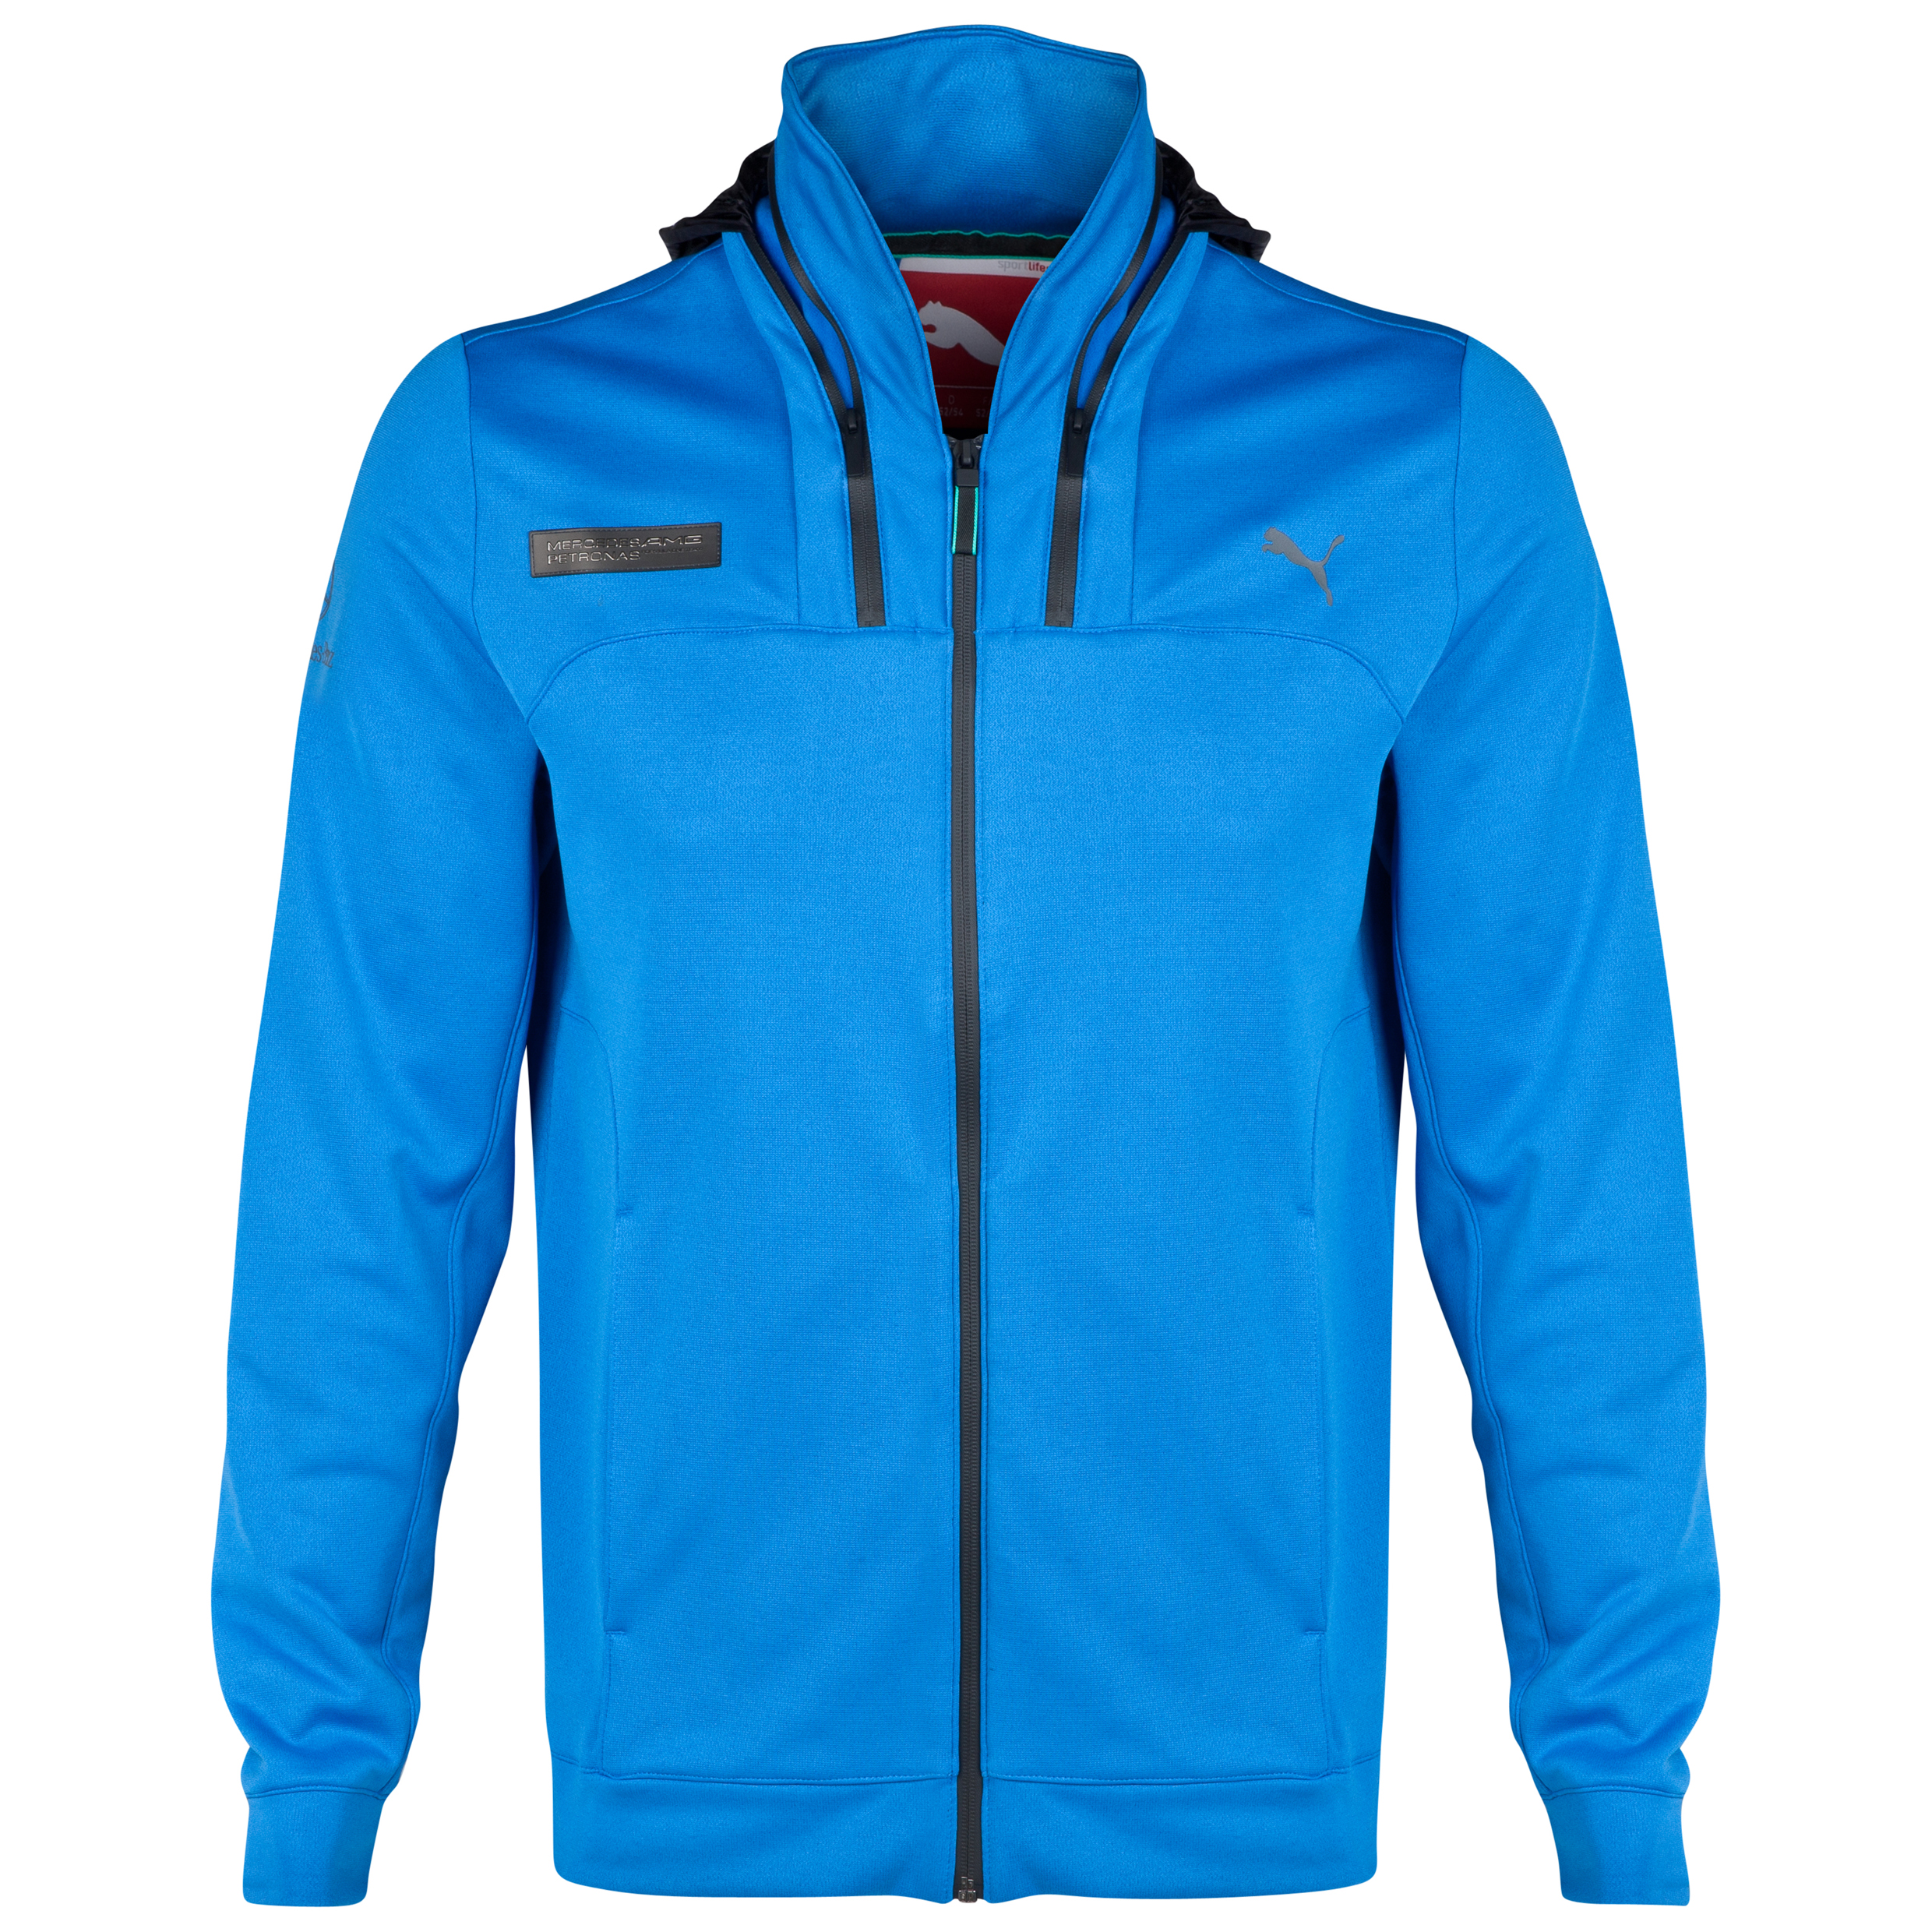 Mercedes AMG PETRONAS Hooded Jacket Blue